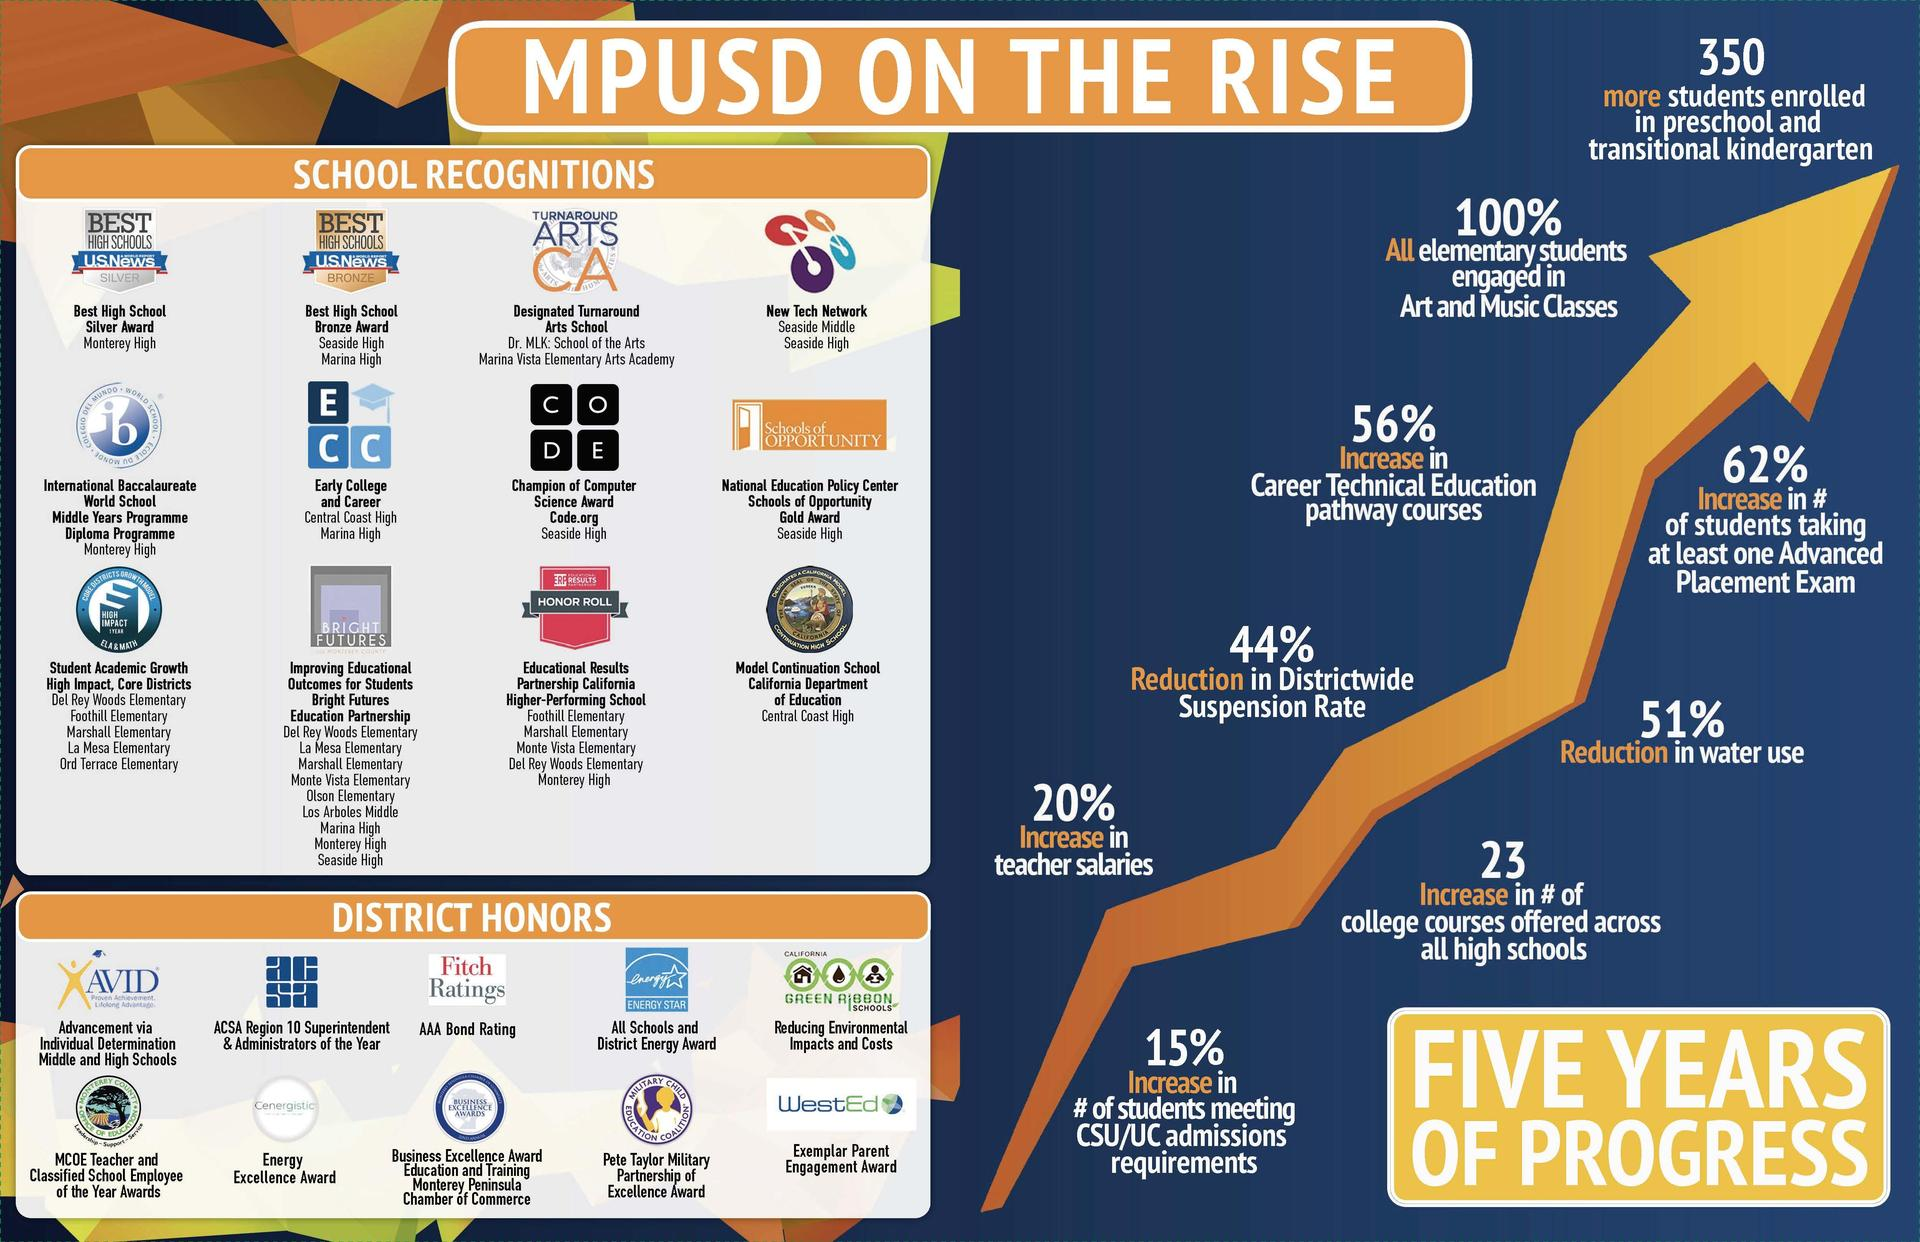 MPUSD on the Rise brochure highlight five years of progress